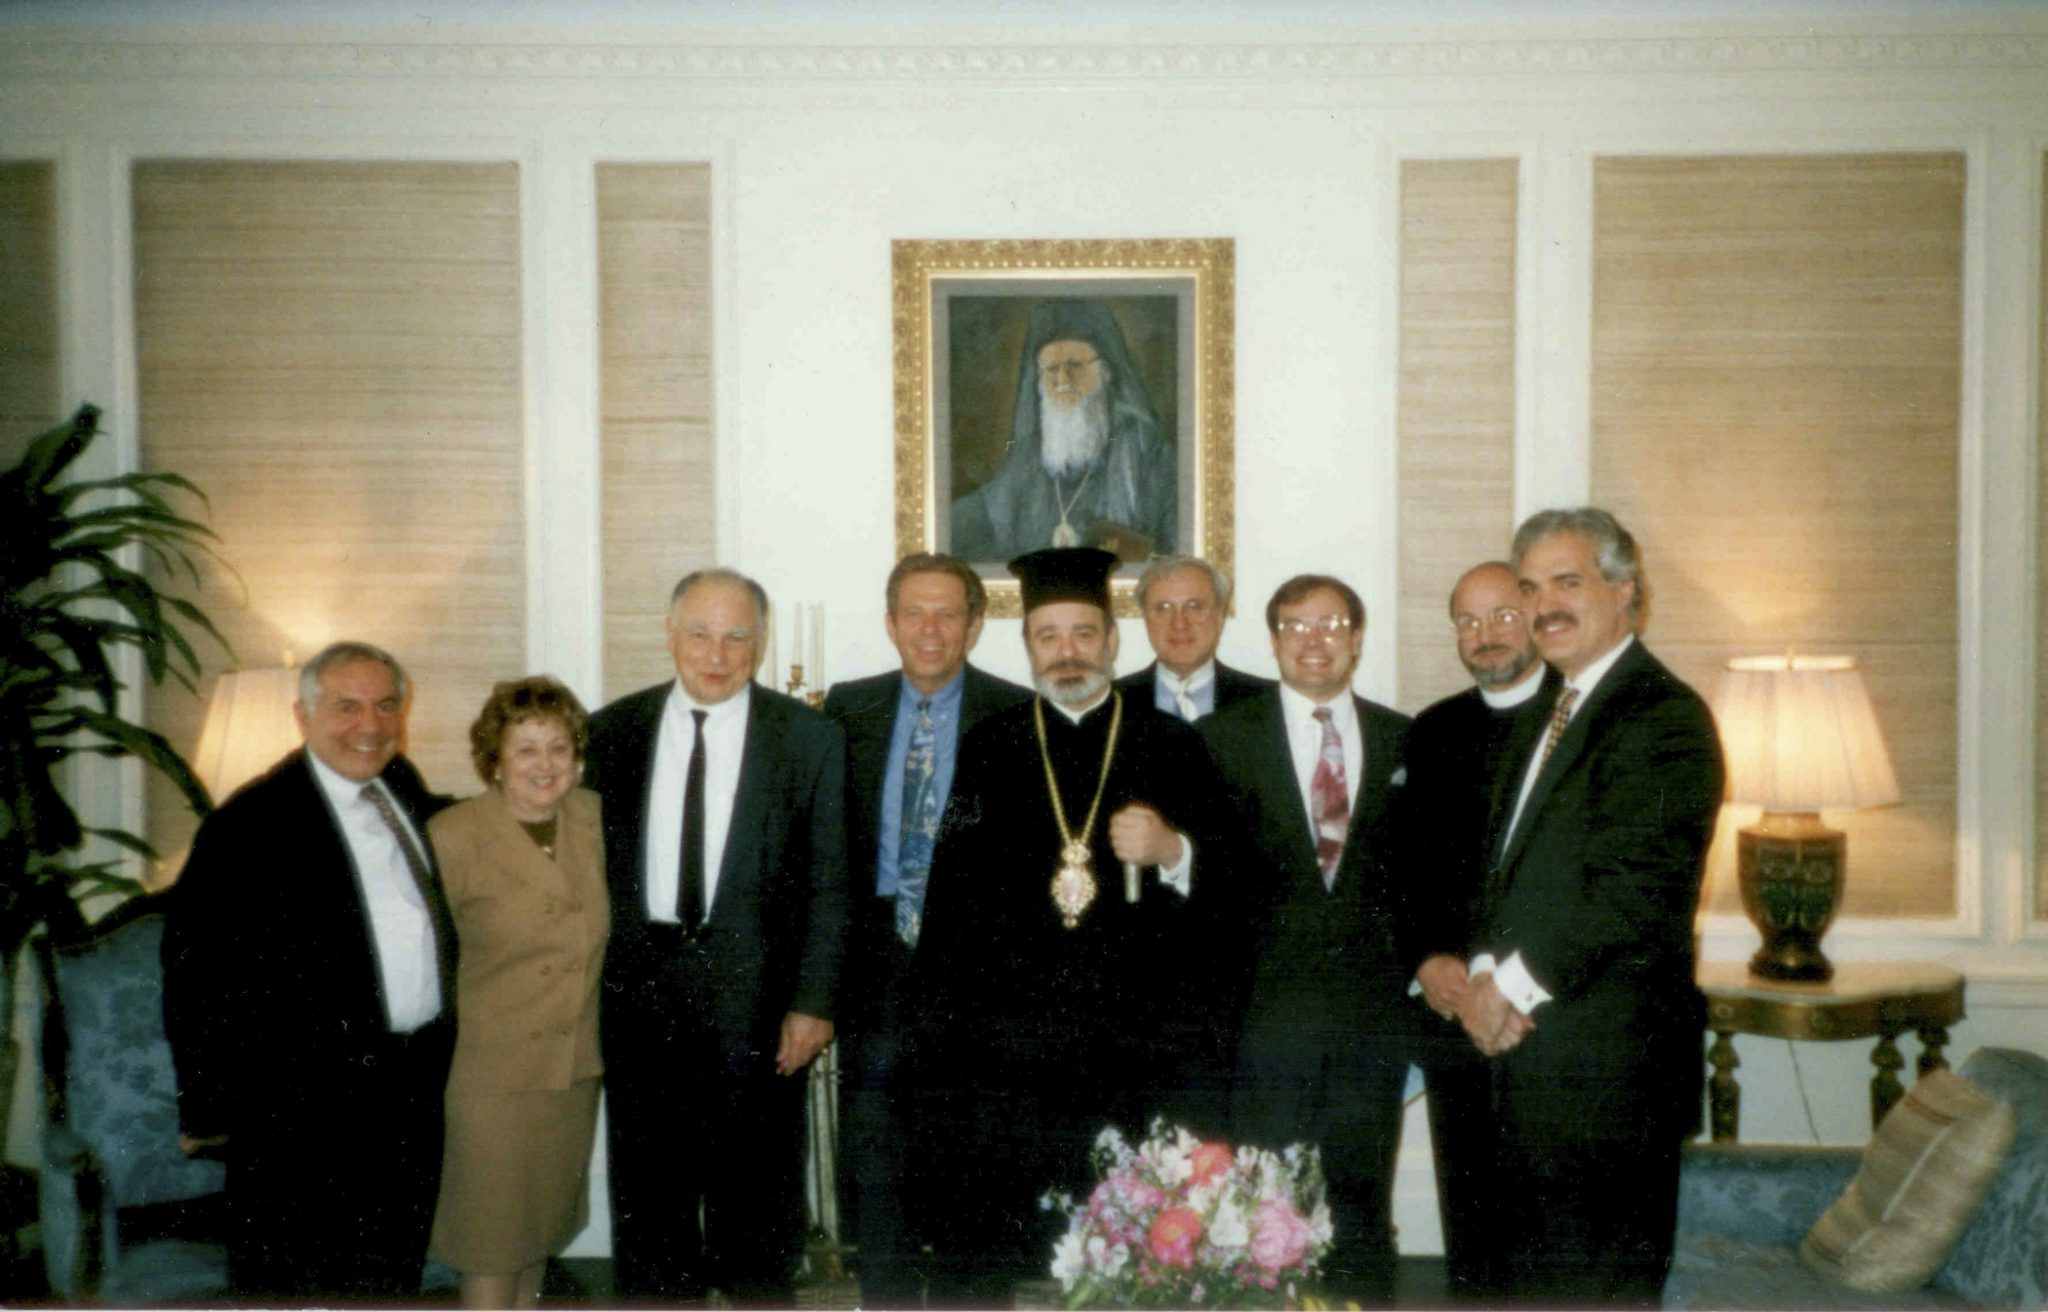 Anastasia Tsotsoura (far left) with Archbishop Spyridon and members of the OCL Board.